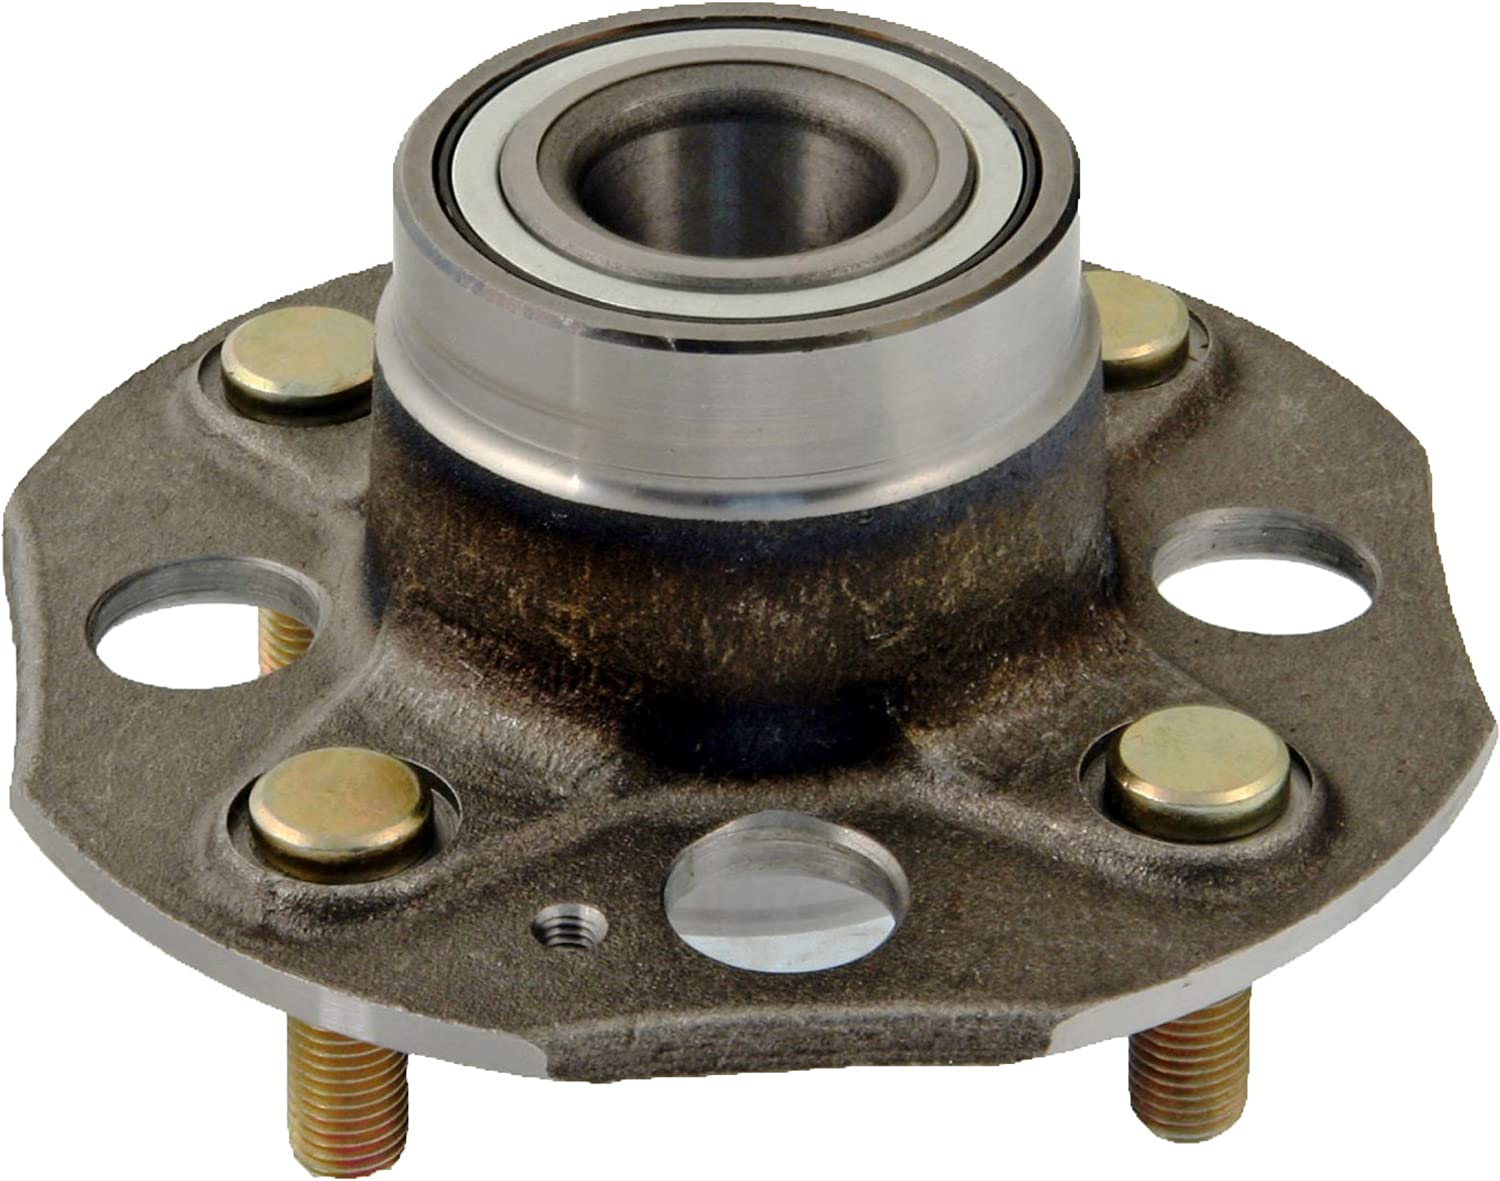 Max 75% OFF ACDelco Gold 512176 Directly managed store Rear Wheel Hub and Assembly Bearing